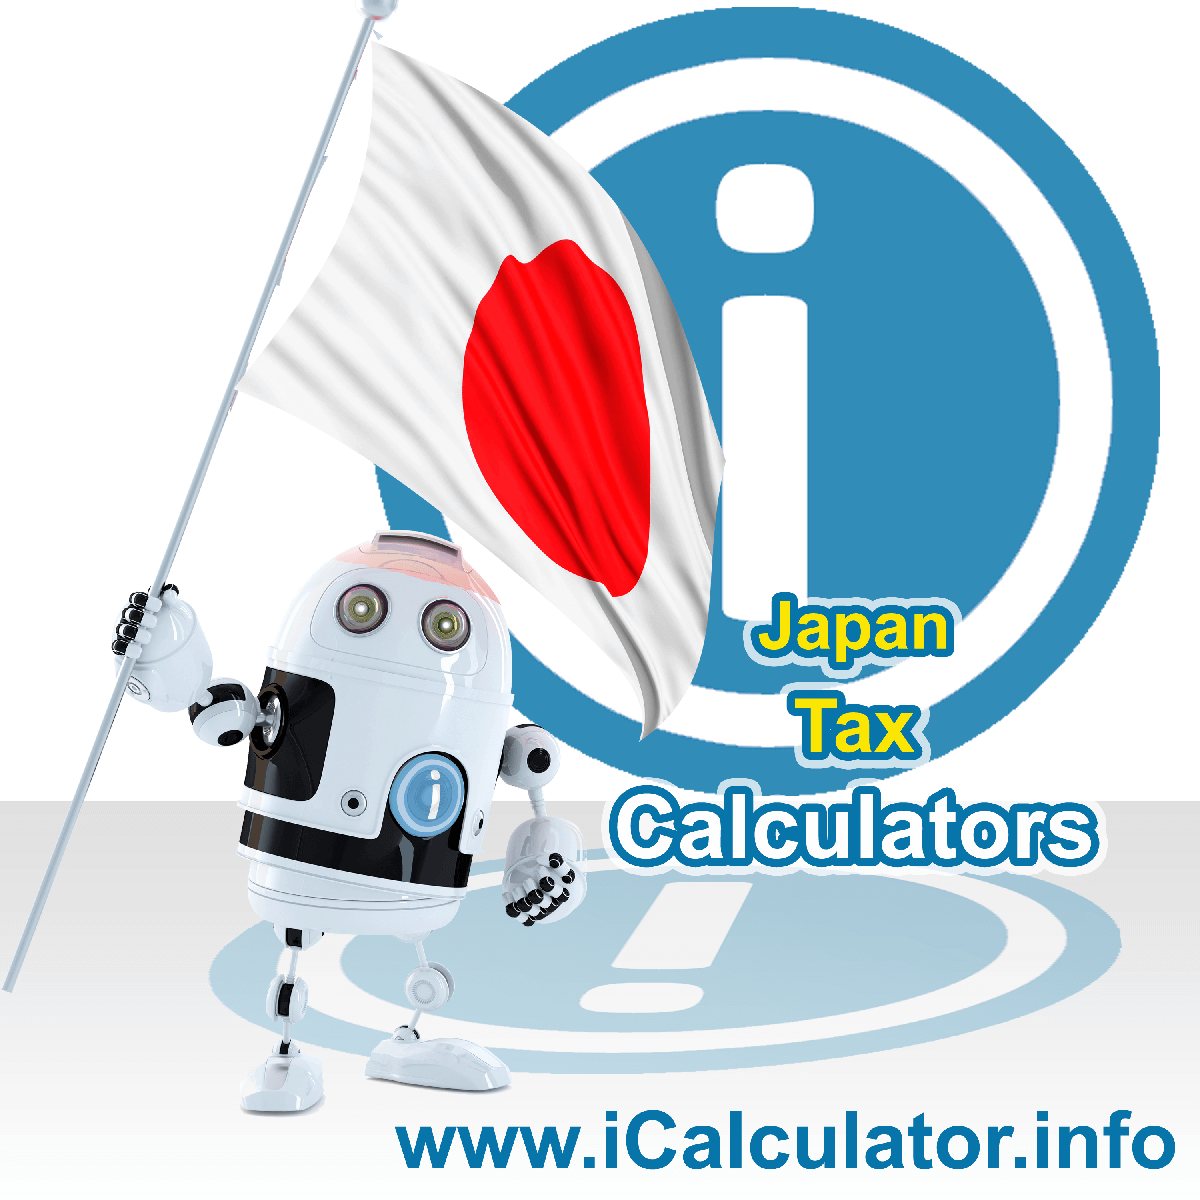 Japan Tax Calculator. This image shows the Japanese flag and information relating to the tax formula for the Japan Tax Calculator